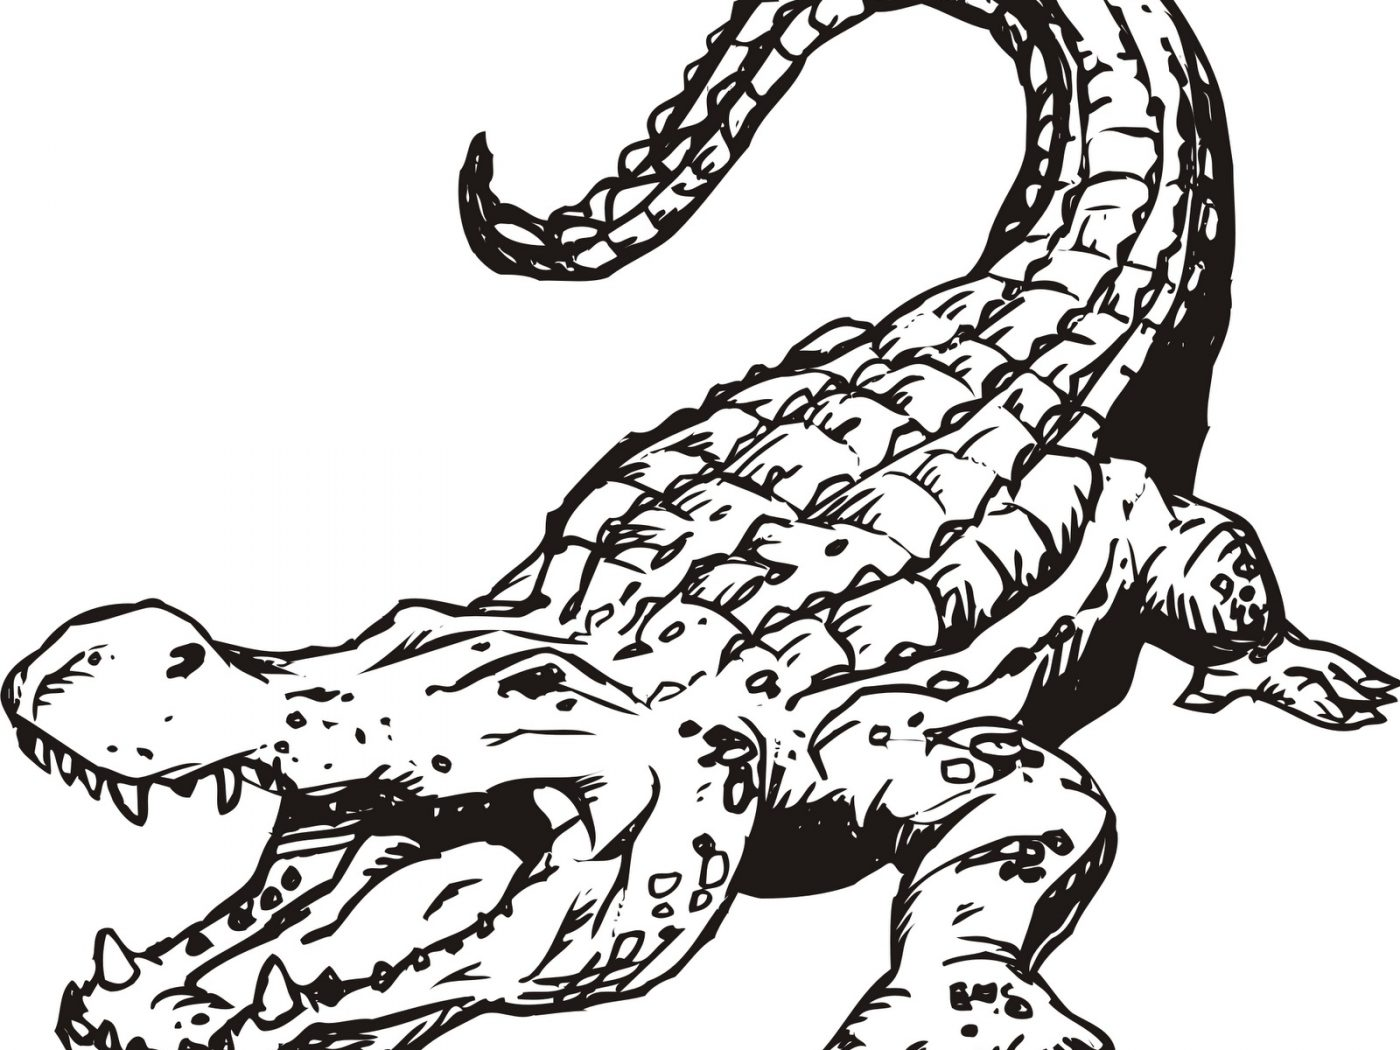 Crocodile Cartoon Drawing at GetDrawings.com | Free for personal use ...